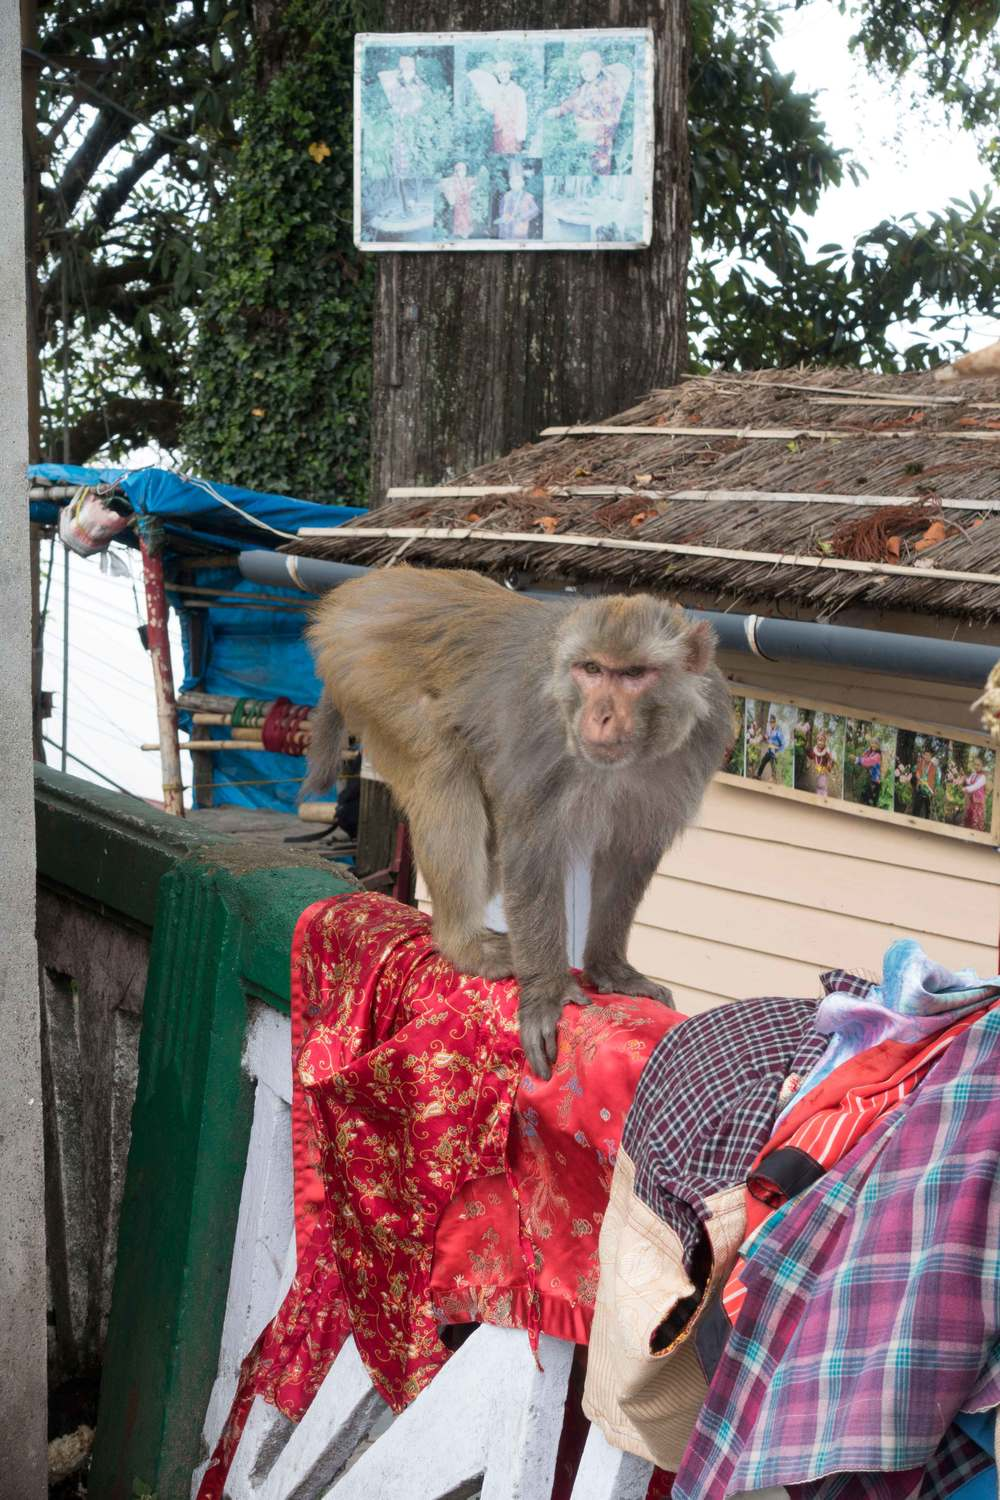 Cheeky monkey in the town square.